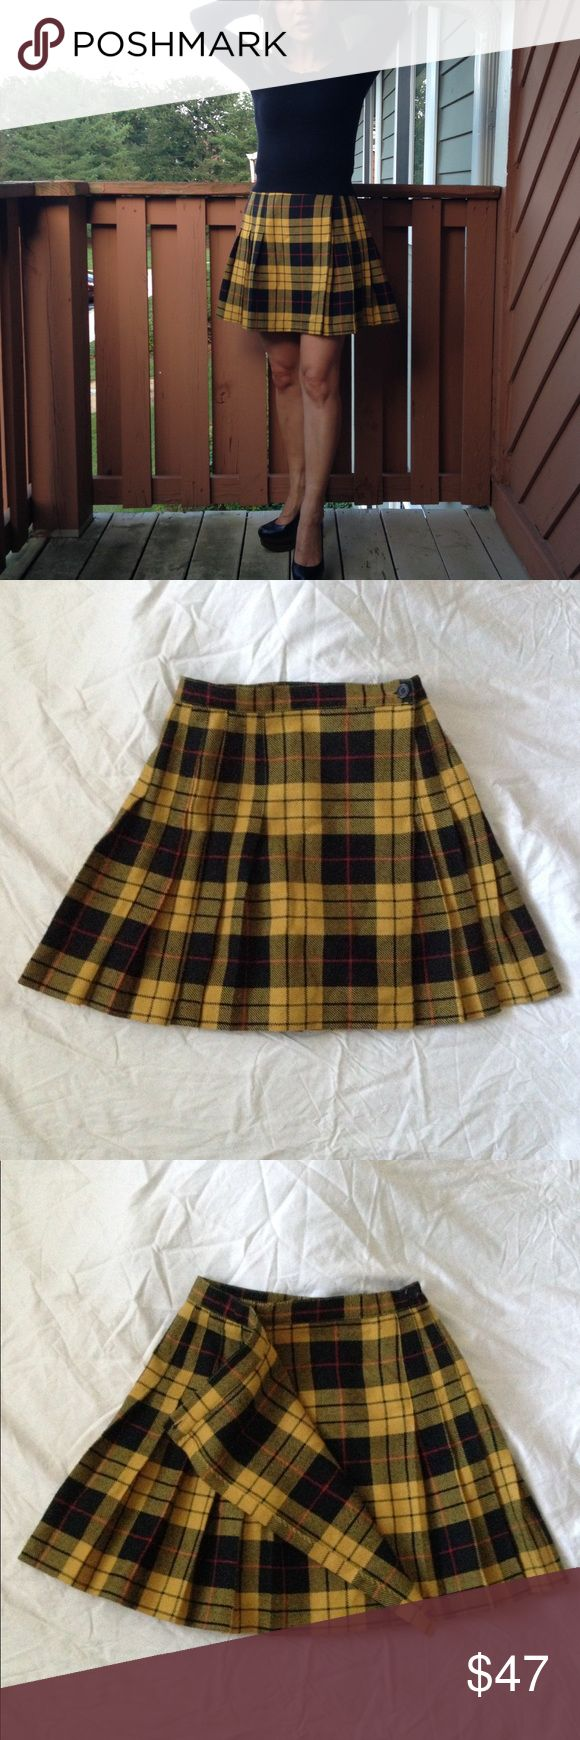 NAF NAF Tartan Wool Blend A-Line Skirt NAF NAF Tartan Wool Blend A-Line Skirt, in good used condition. Black, red and yellow keep this 30% wool and 70% polyester Naf Naf bright and classy. Versatile tartan plaid fabric is perfect for work and play. Two button closure and waist pleats for a flattering fit. Pair with a leather jacket and over the knee boots. The French size 38 fits a XS US size (waist: 12.25 inches across laying flat [waist: 24.5 inches] and length: 16.5 inches). NAF NAF…